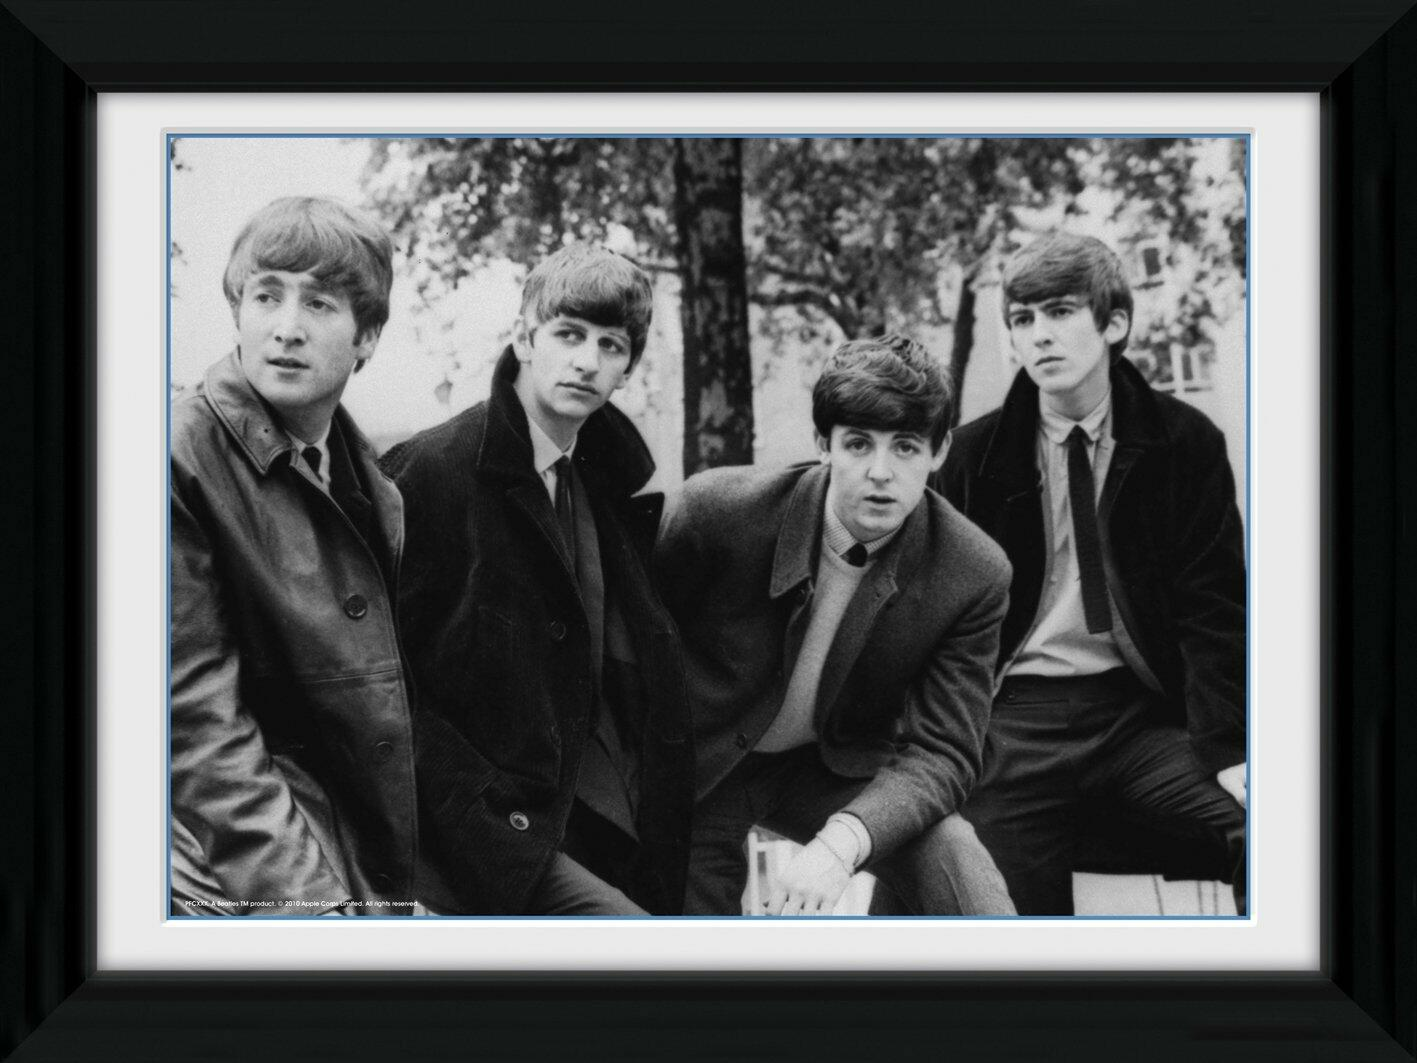 Idee Pose Fotografiche : Foto in cornice the beatles pose gb eye idee regalo ibs